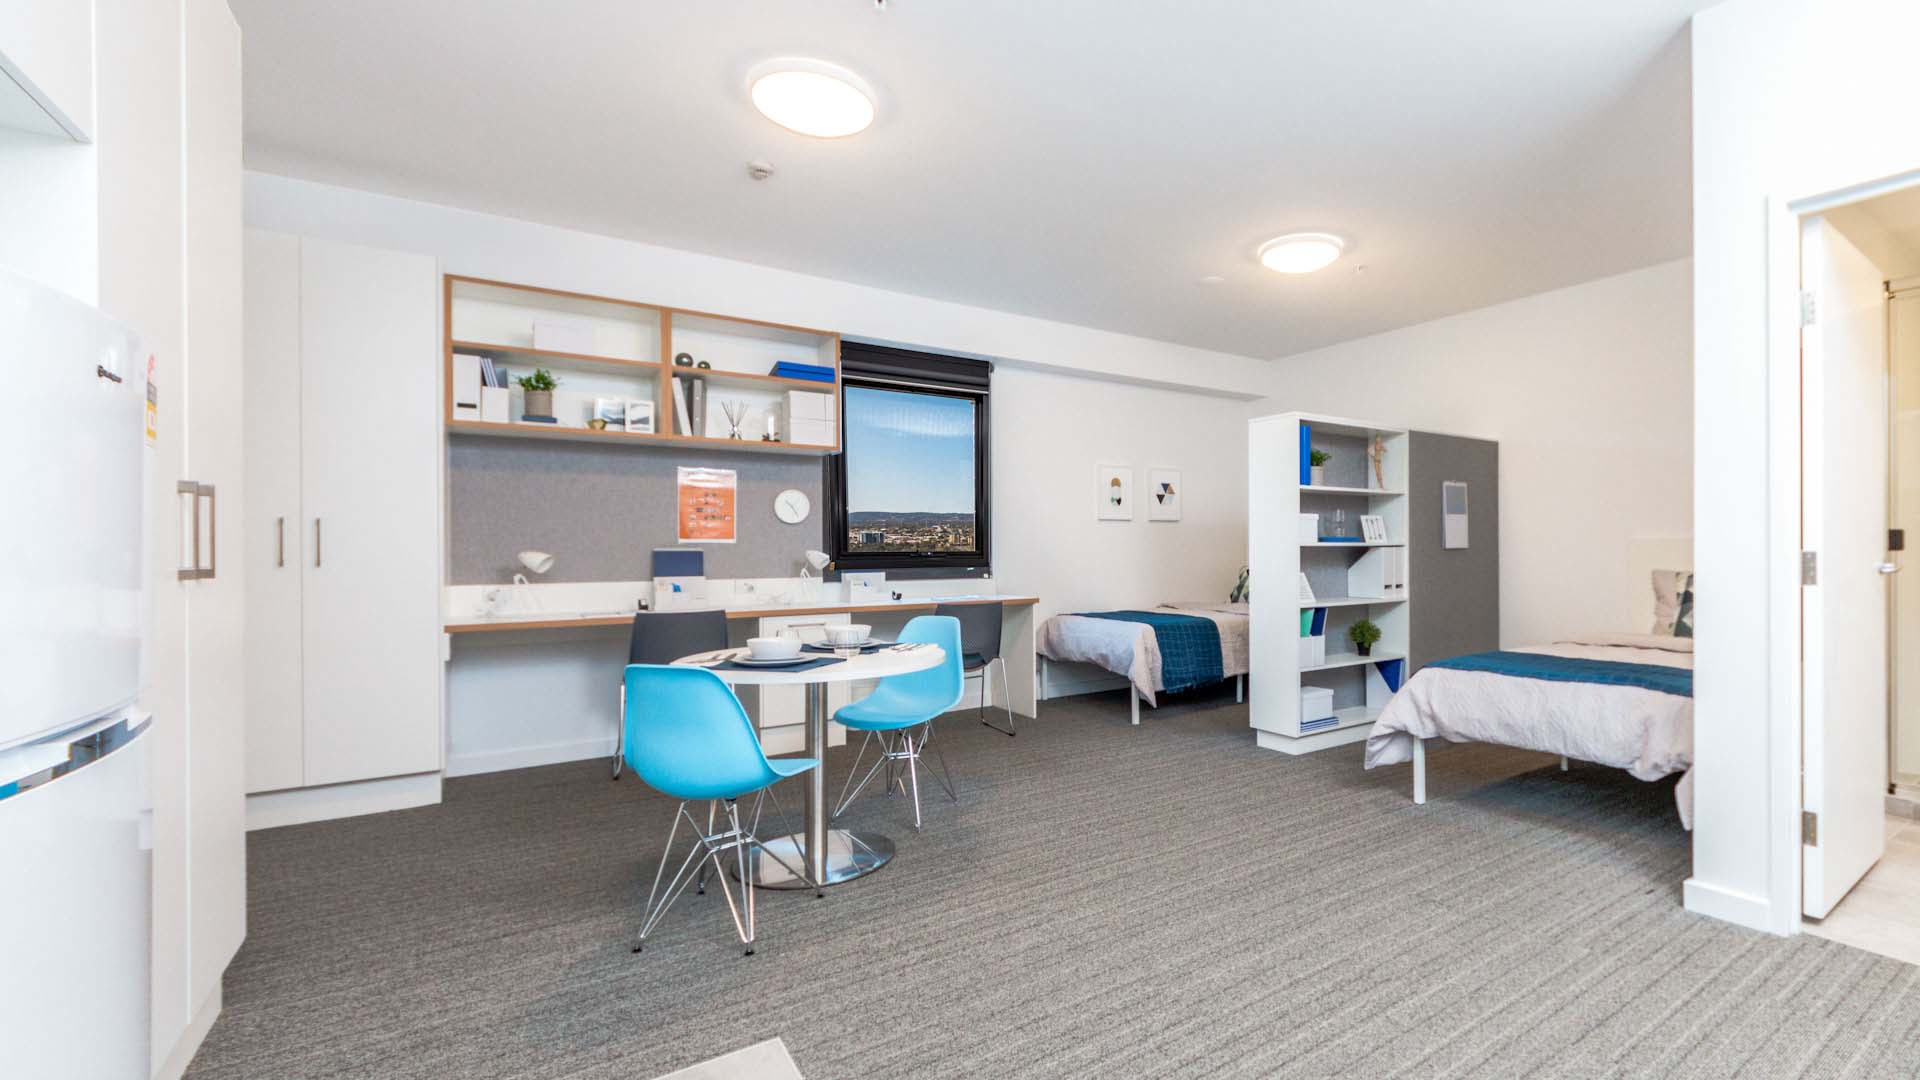 Studio For Rent Adelaide Brand New Great Value Student Accommodation Adelaide